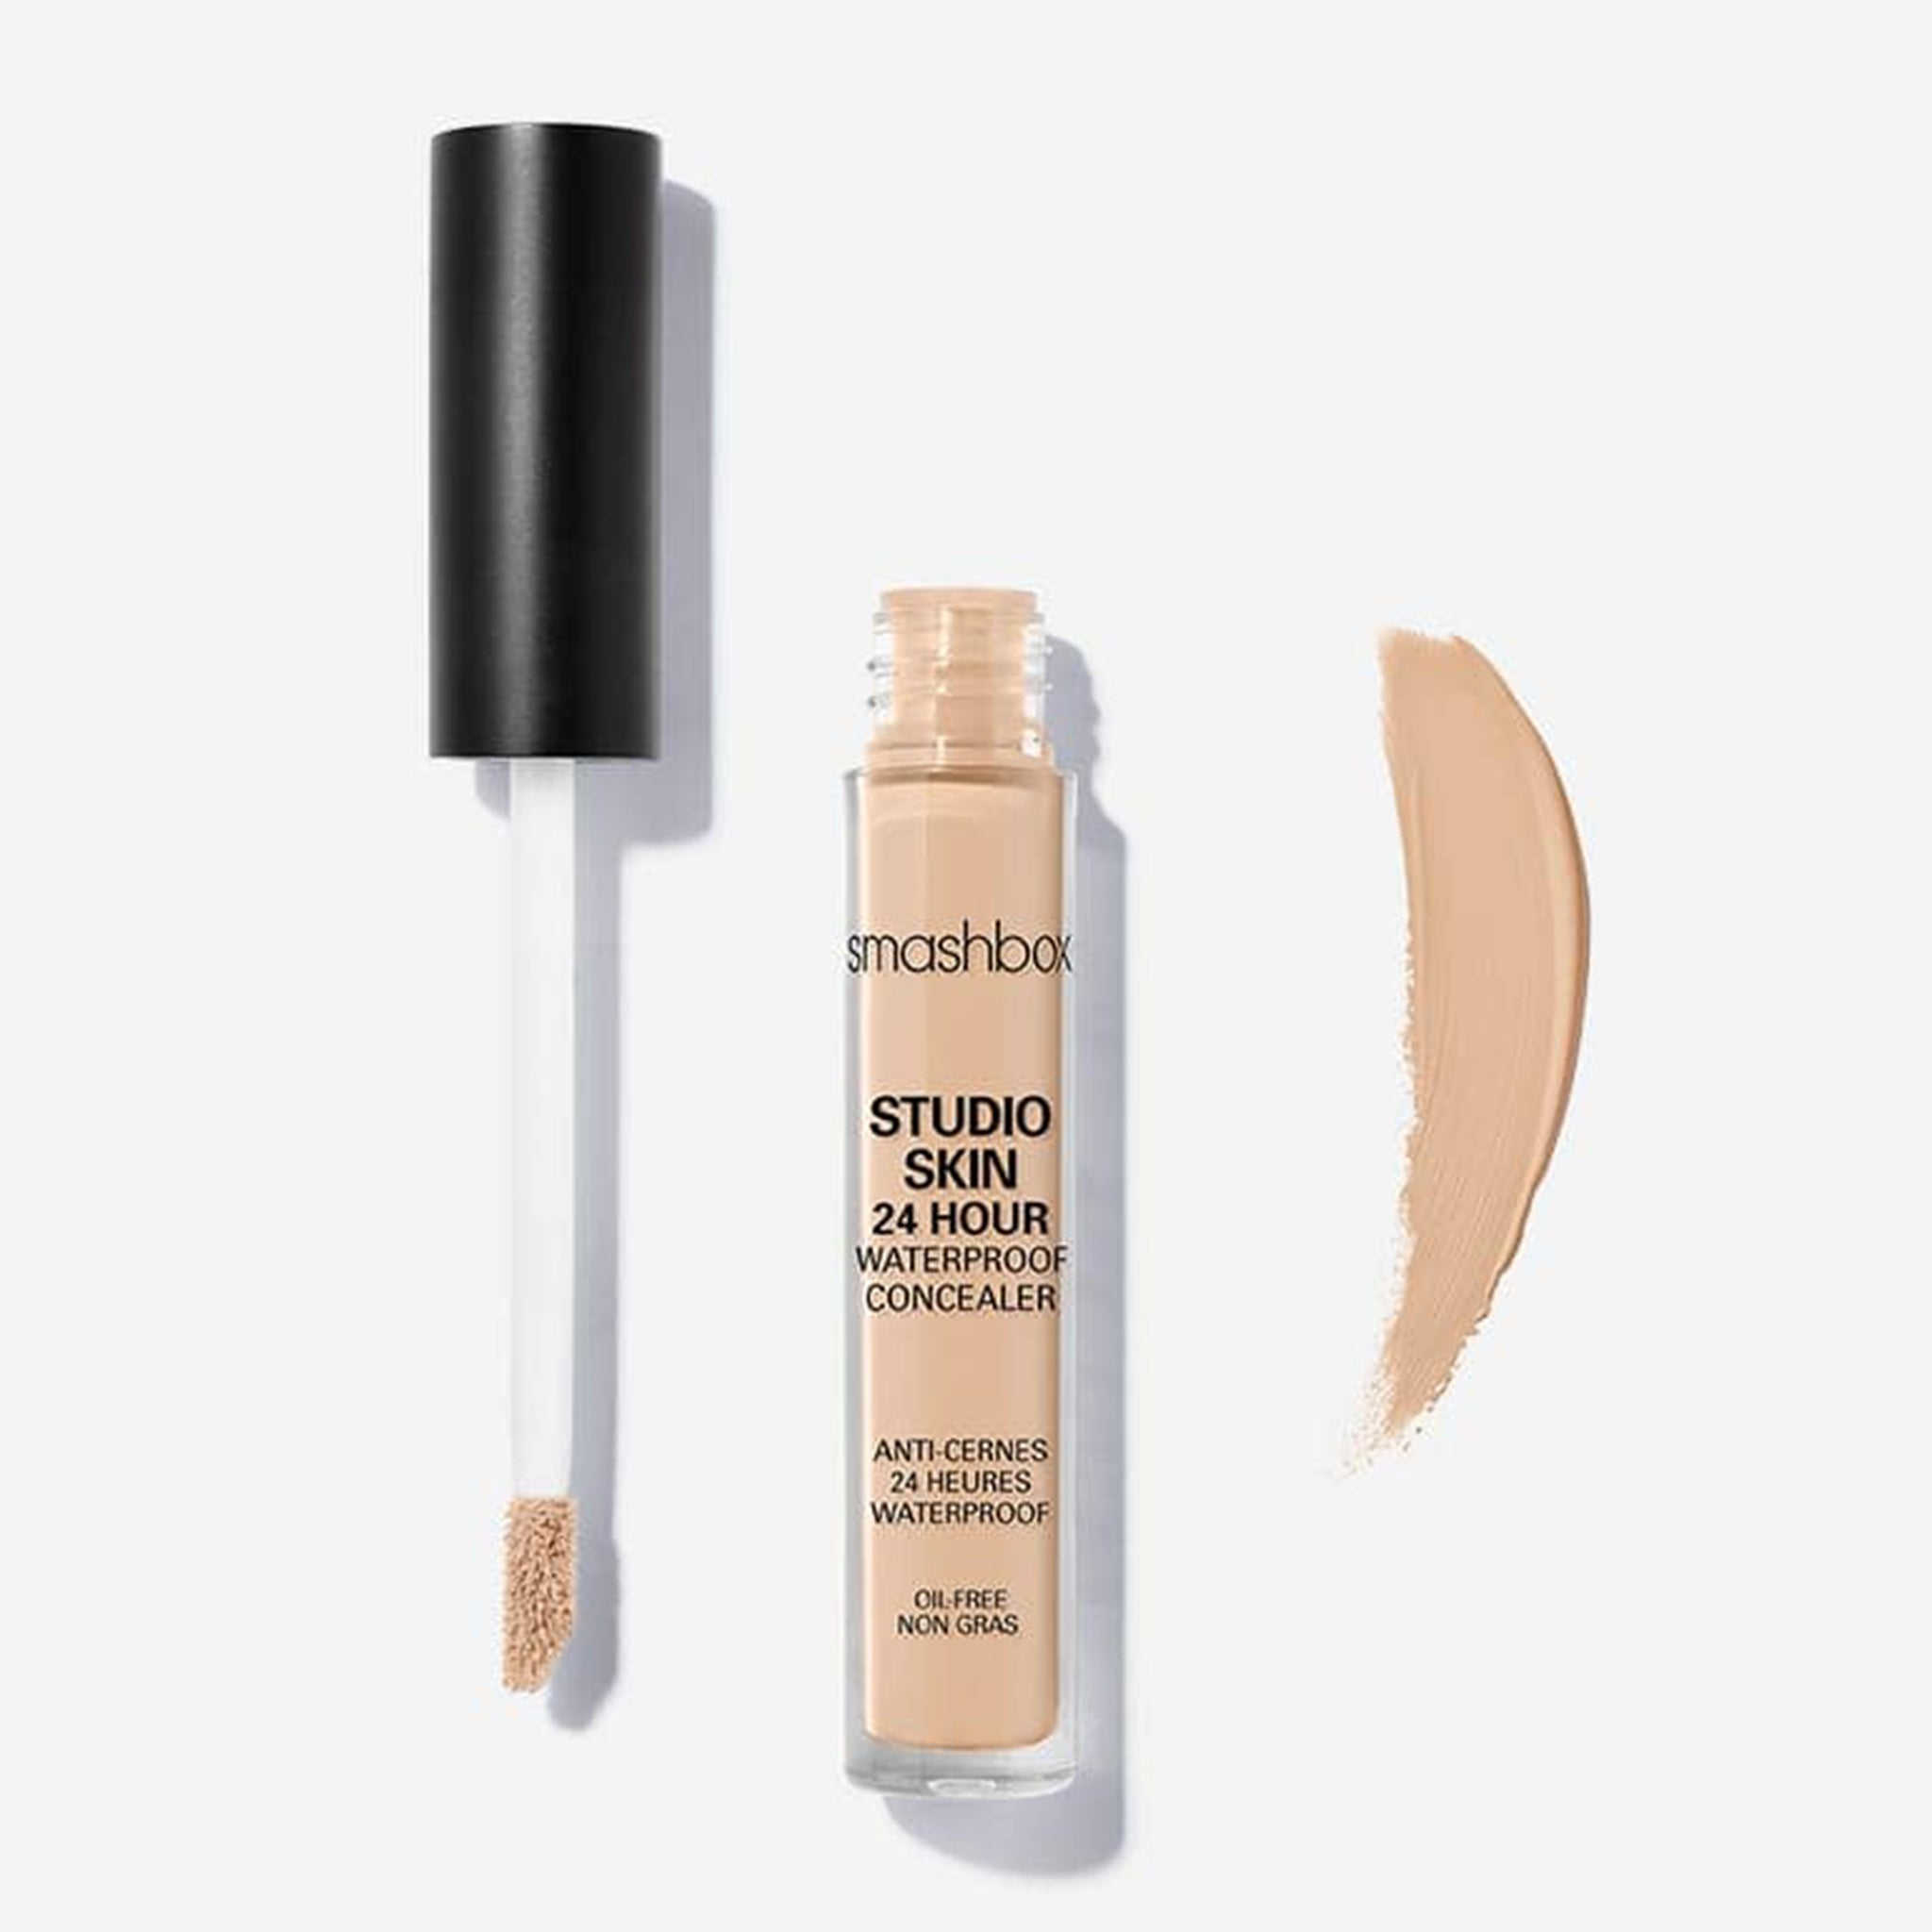 Studio Skin 24 Hour Waterproof Concealer